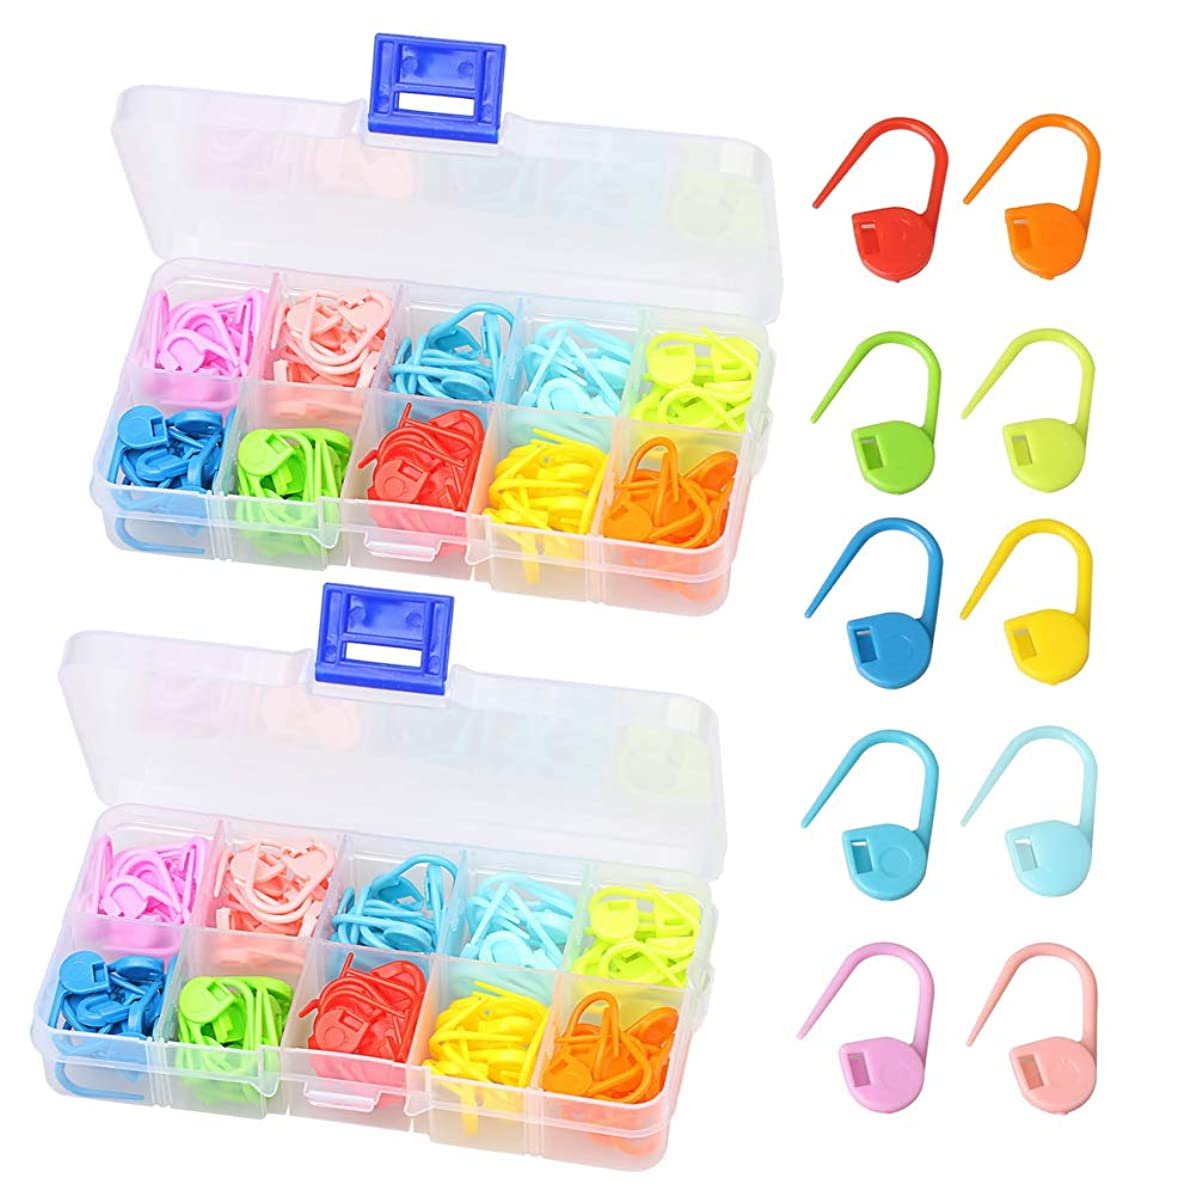 Hugesavings 240 Pieces Locking Stitch Markers, 10 Colors Stitch Markers Knitting Crochet Locking Stitch Needle Clip with 2 Plastic Boxes